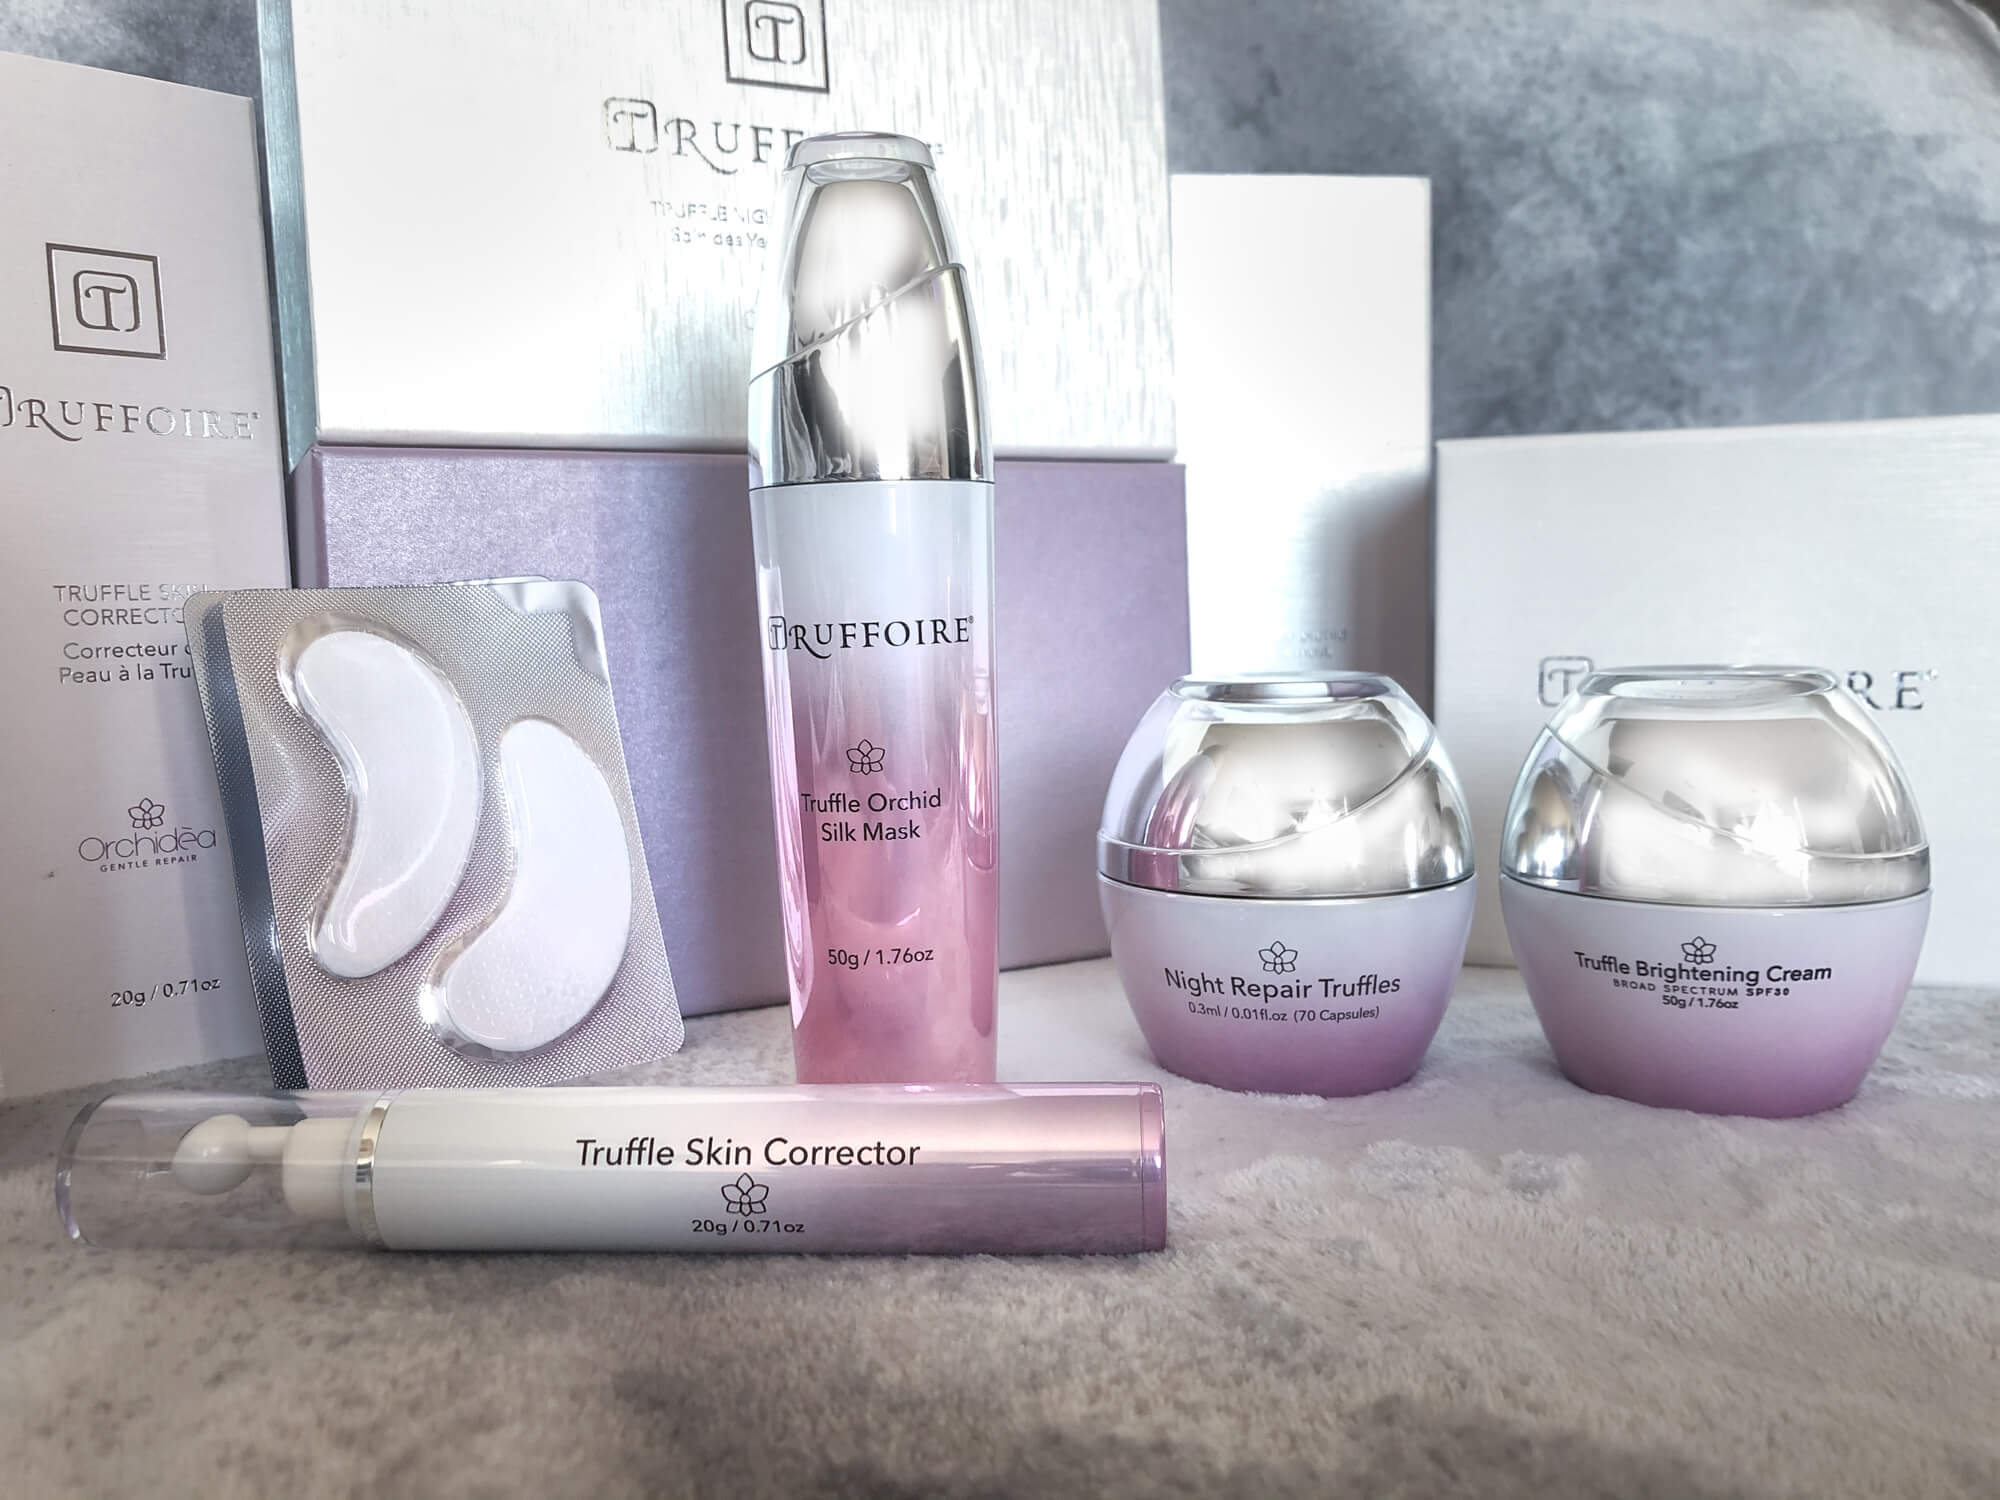 Truffoire skincare products